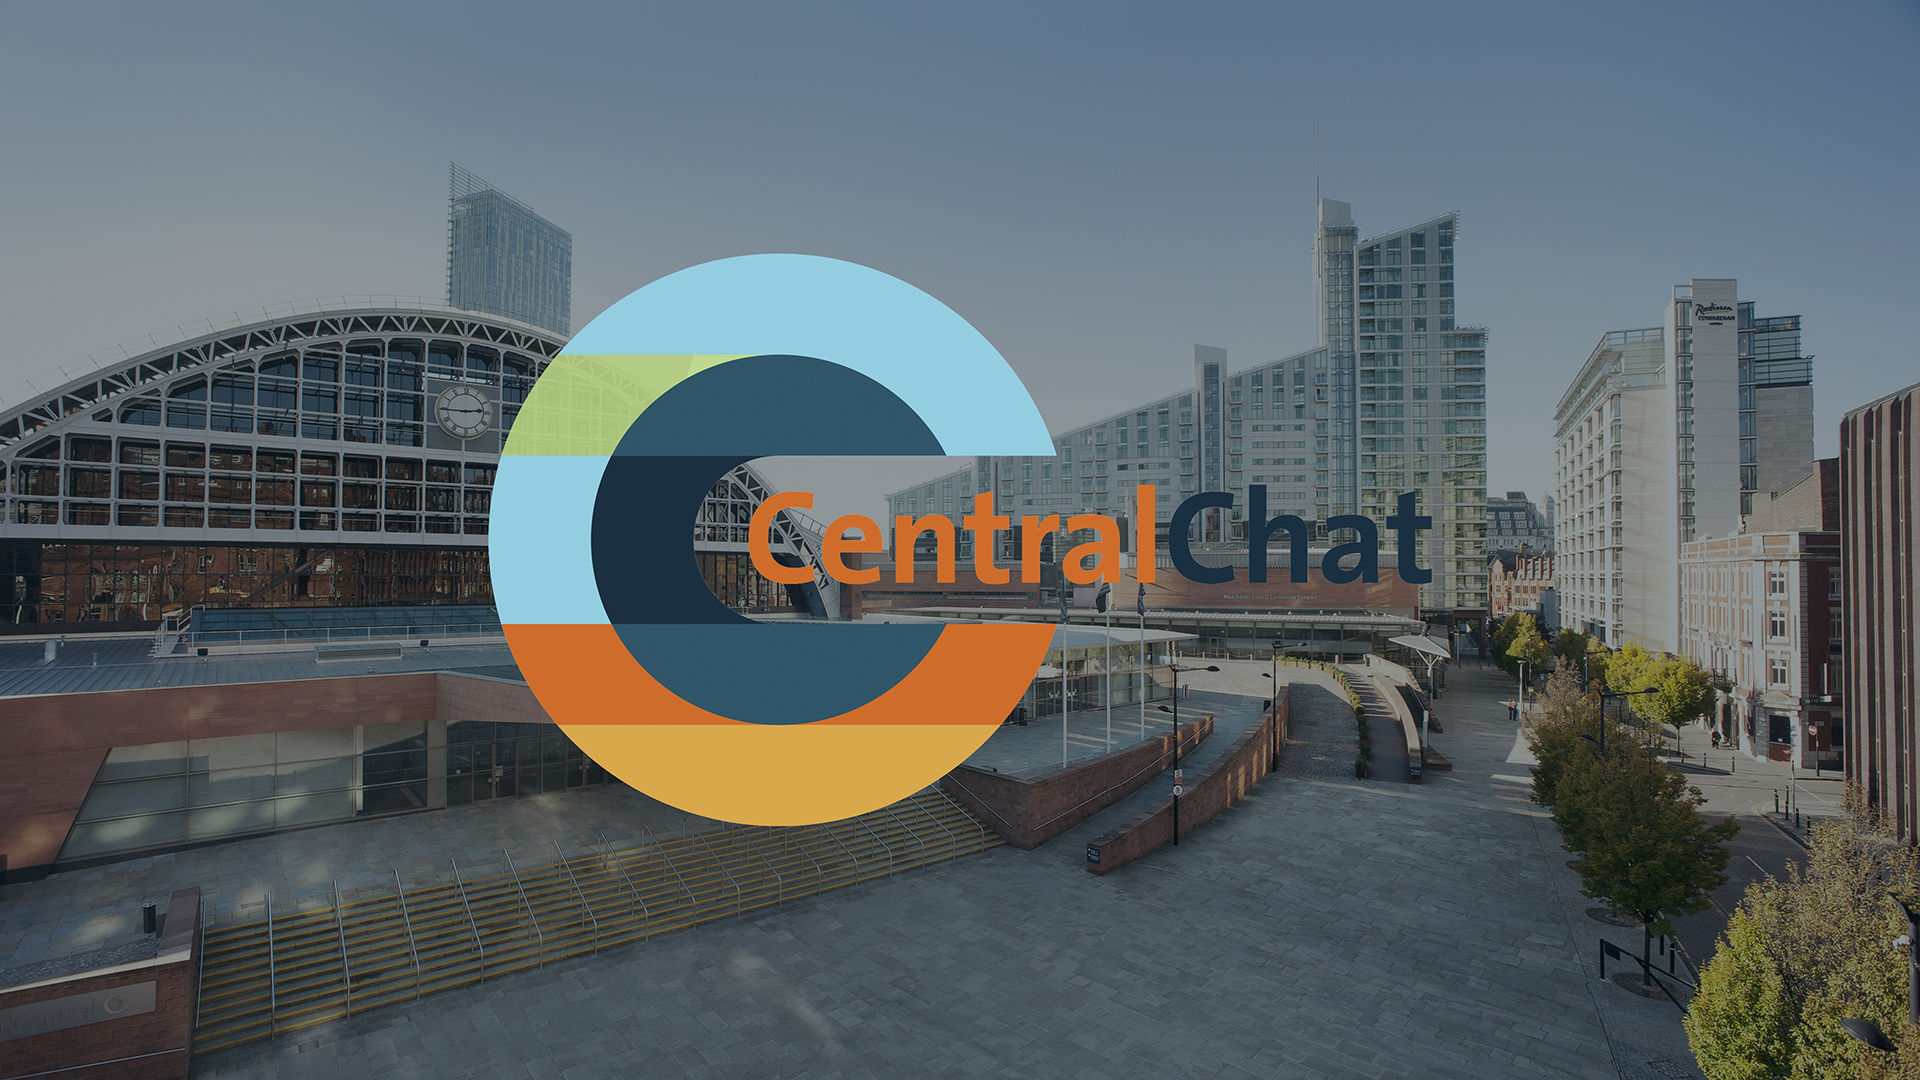 Manchester Central chats to CEO of pro-manchester in latest podcast episode